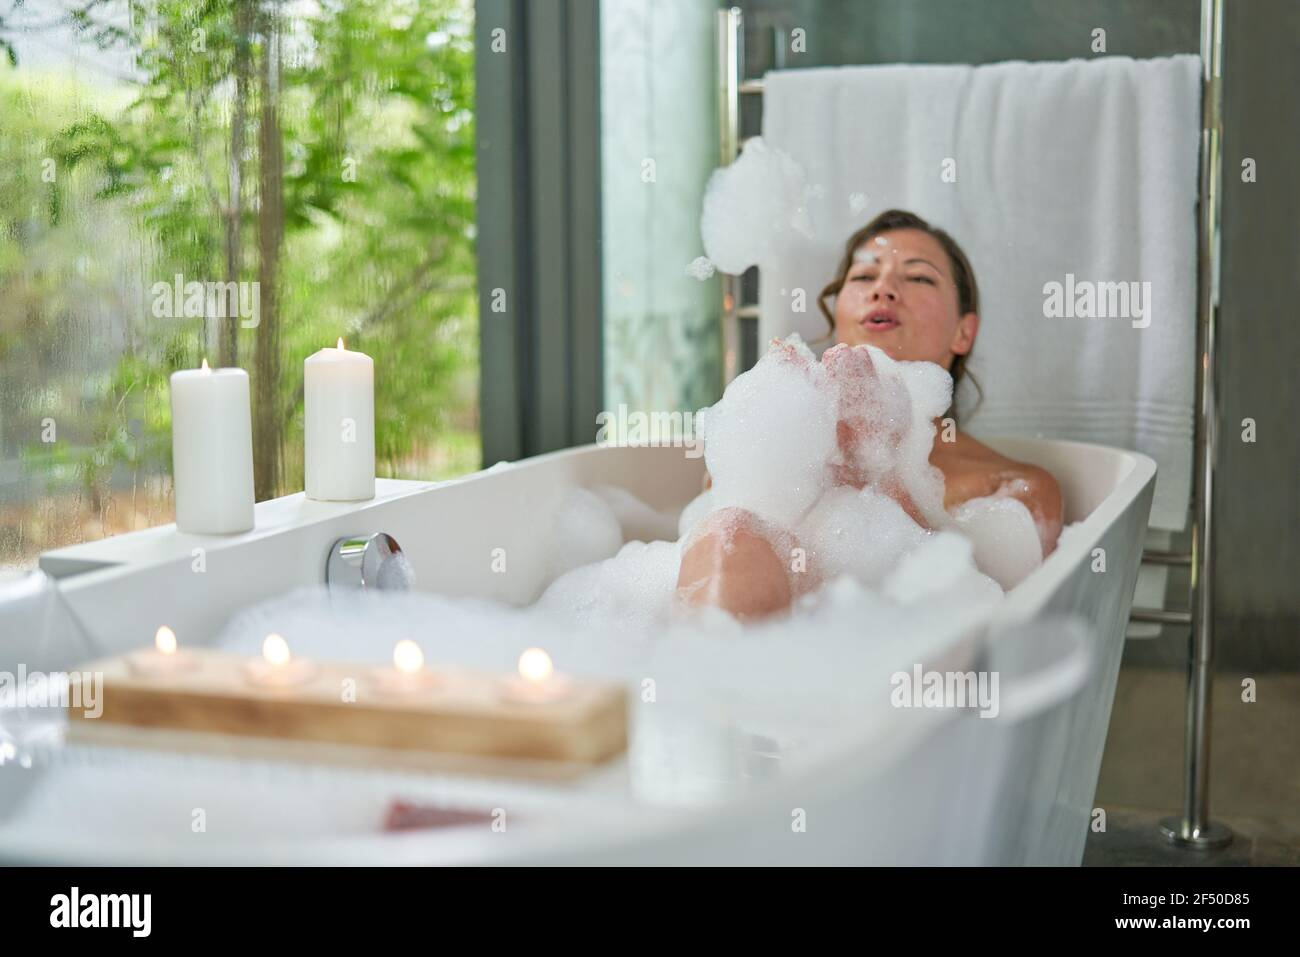 Home alone hot women Woman Bubble Bath Home Alone Relax High Resolution Stock Photography And Images Alamy